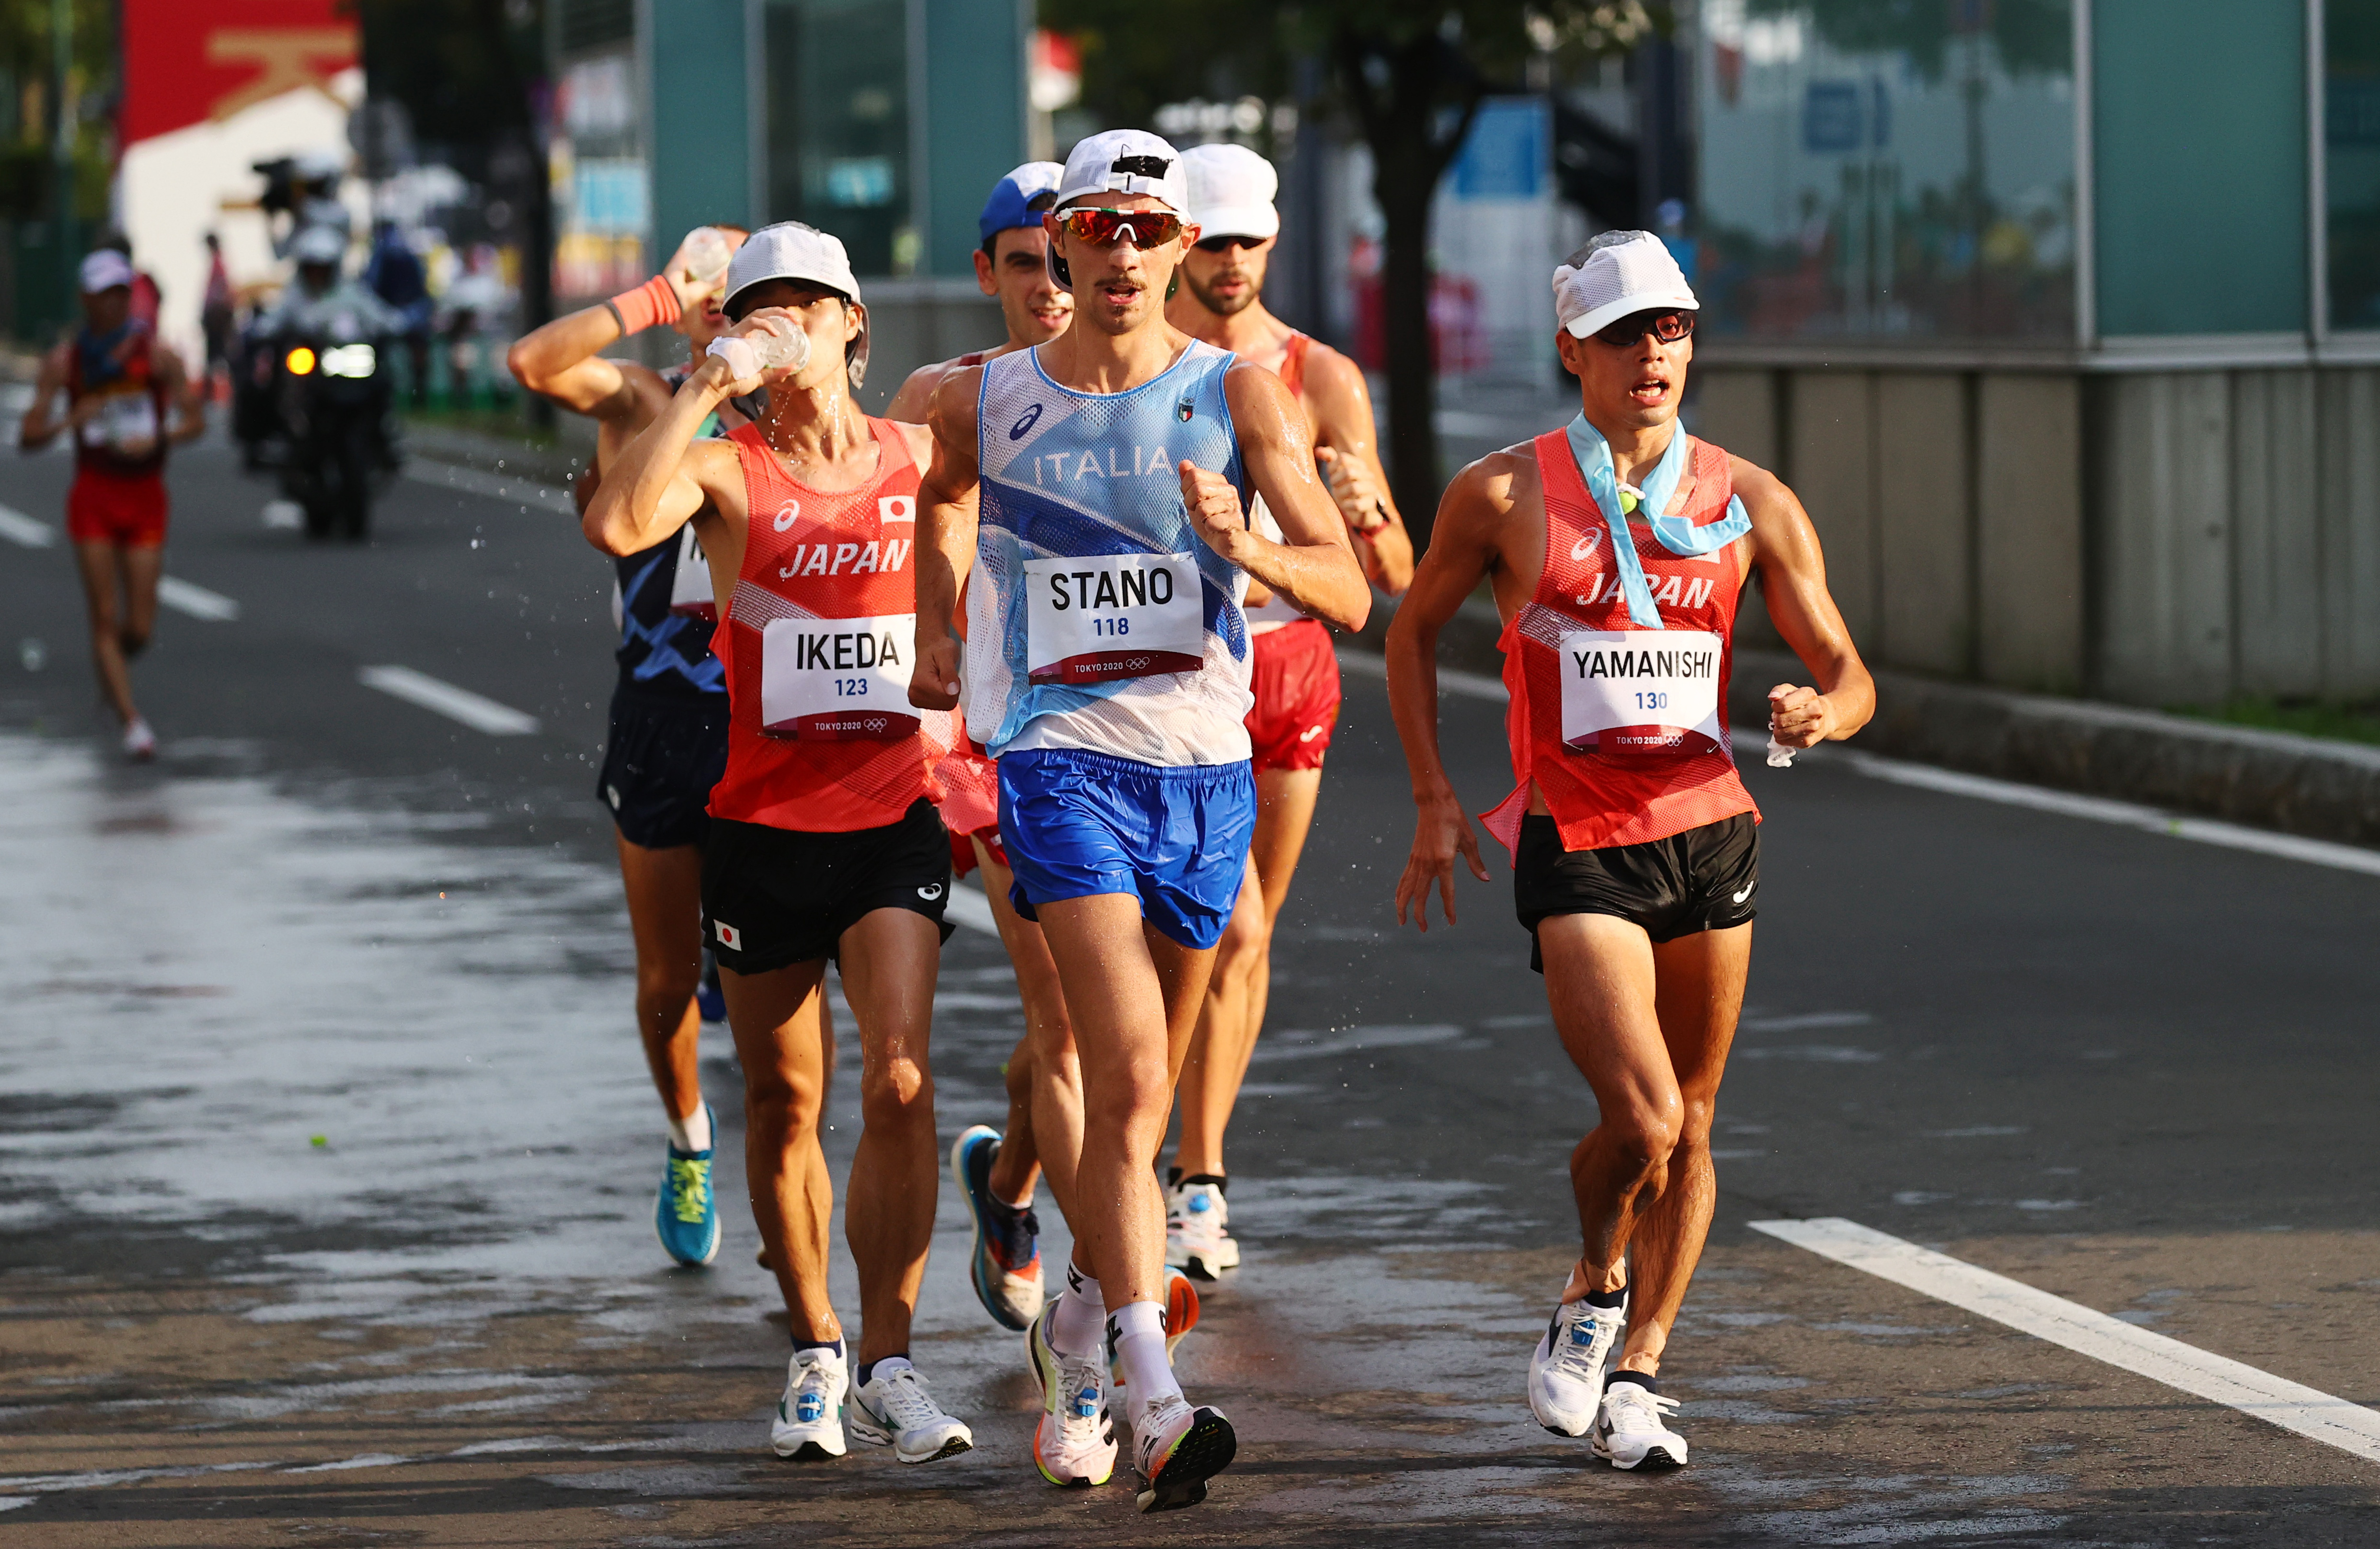 Tokyo 2020 Olympics - Athletics - Men's 20km Walk - Sapporo Odori Park, Sapporo, Japan - August 5, 2021. Massimo Stano of Italy and Toshikazu Yamanishi of Japan in action during competing REUTERS/Kim Hong-Ji